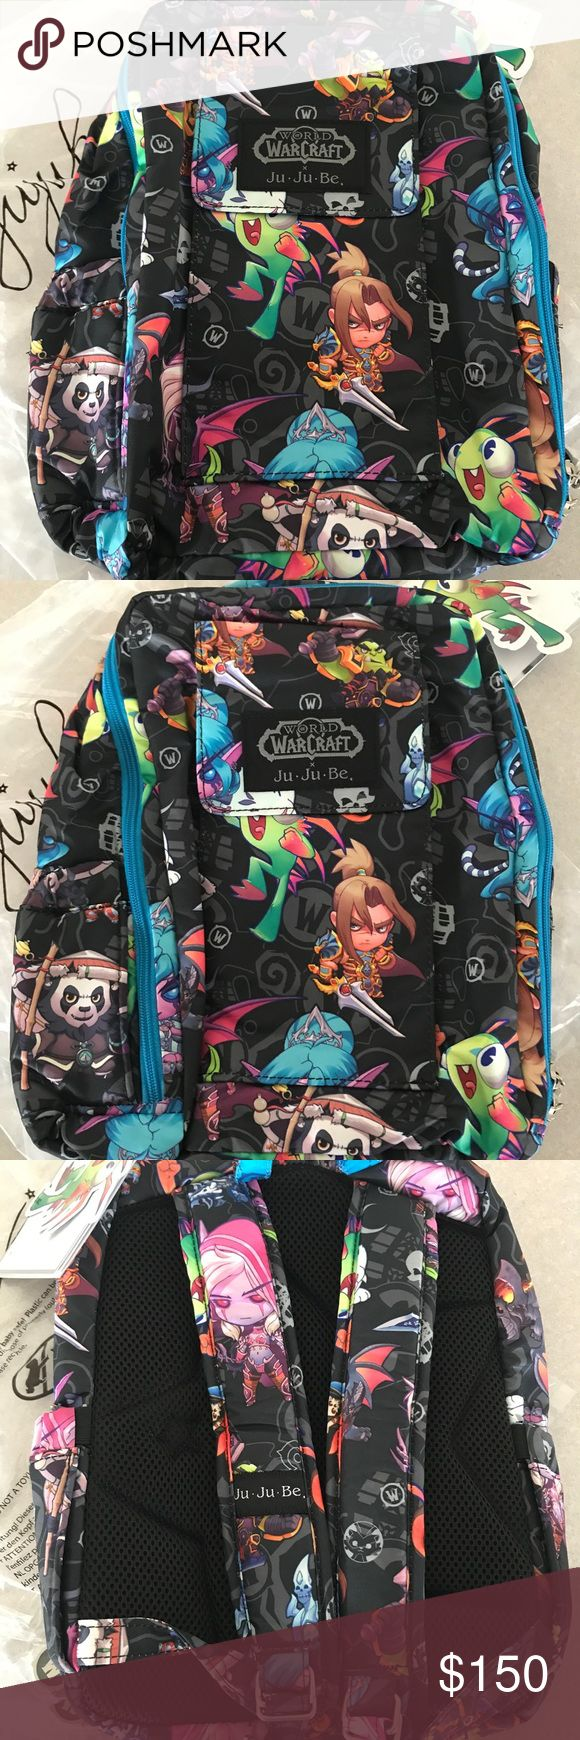 """Ju-Ju-Be Mini Be Cute But Deadly World of Warcraft Authentic Ju-Ju-Be x BLIZZARD World of Warcraft """"Cute But Deadly"""" Collaboration MINI BE Backpack  Incredibly rare and sold out worldwide. This release was very limited. PRICE FIRM. NO Offers.  9""""W x 12""""H x 5""""D Ju-Ju-Be Bags Backpacks"""